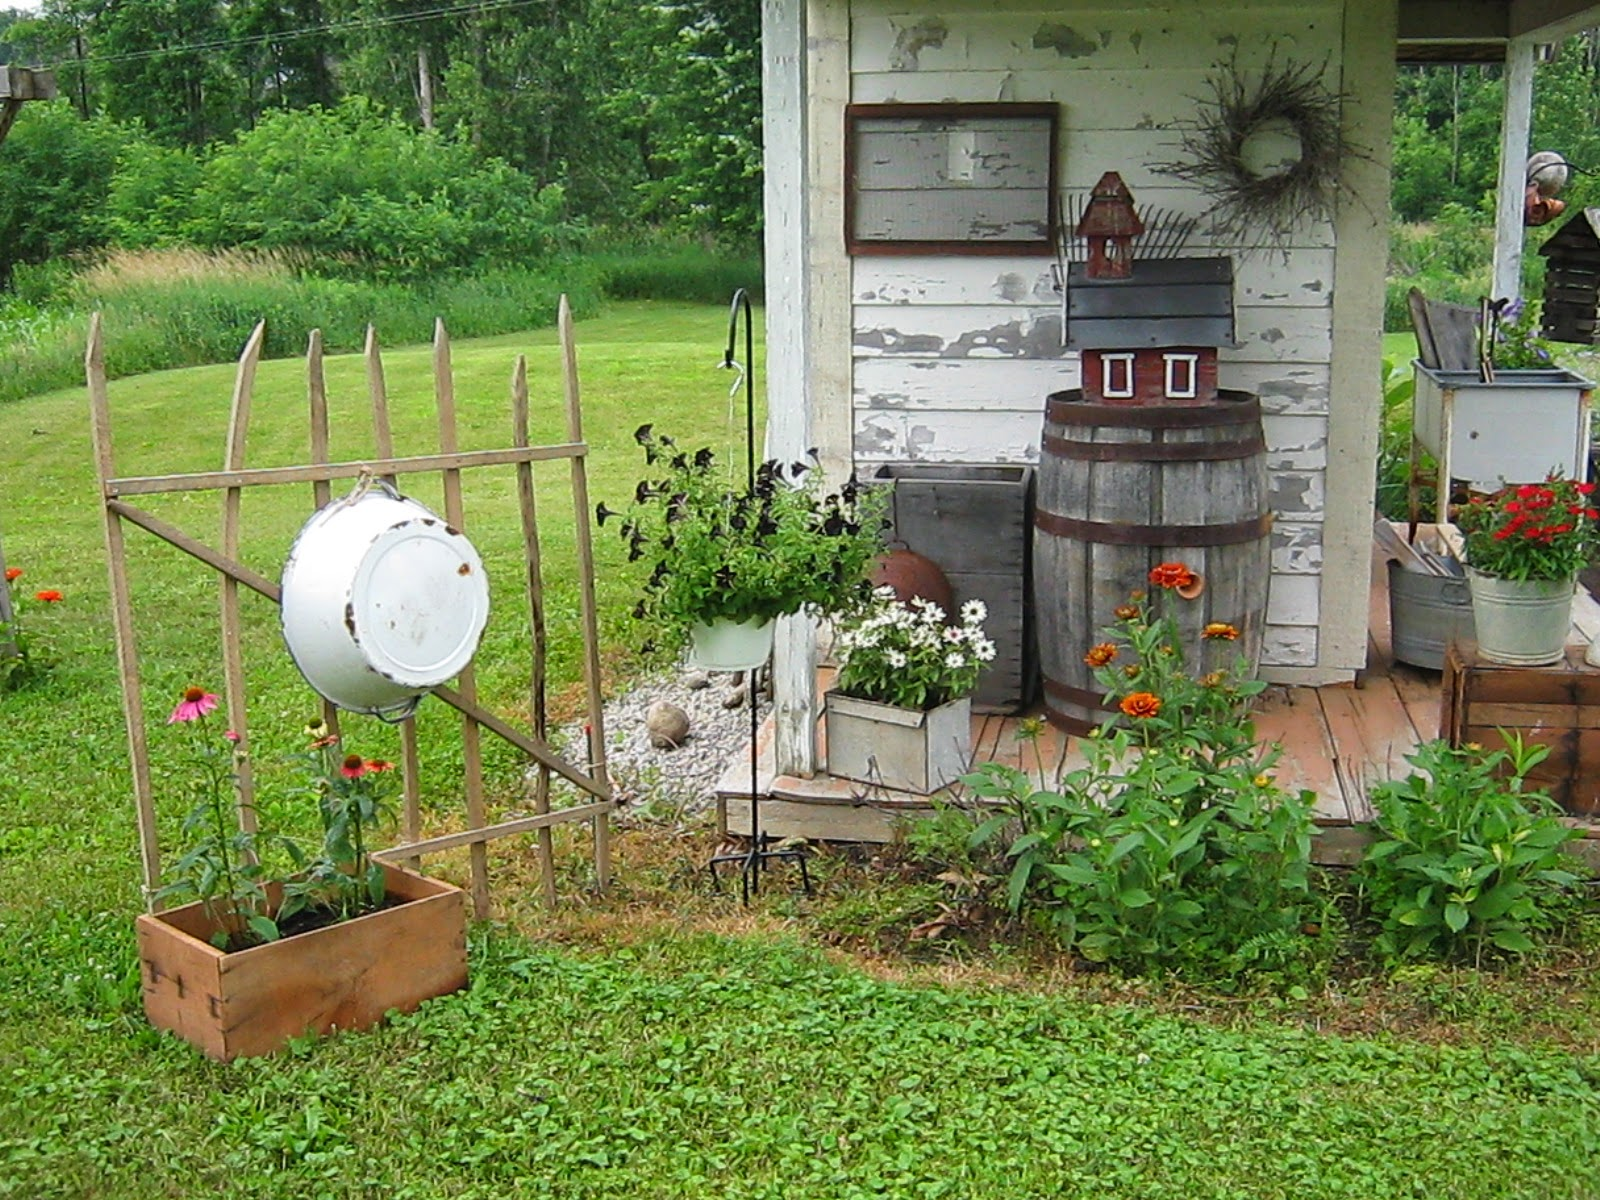 Primitive passion decorating garden shed expansion for Garden accessories canada